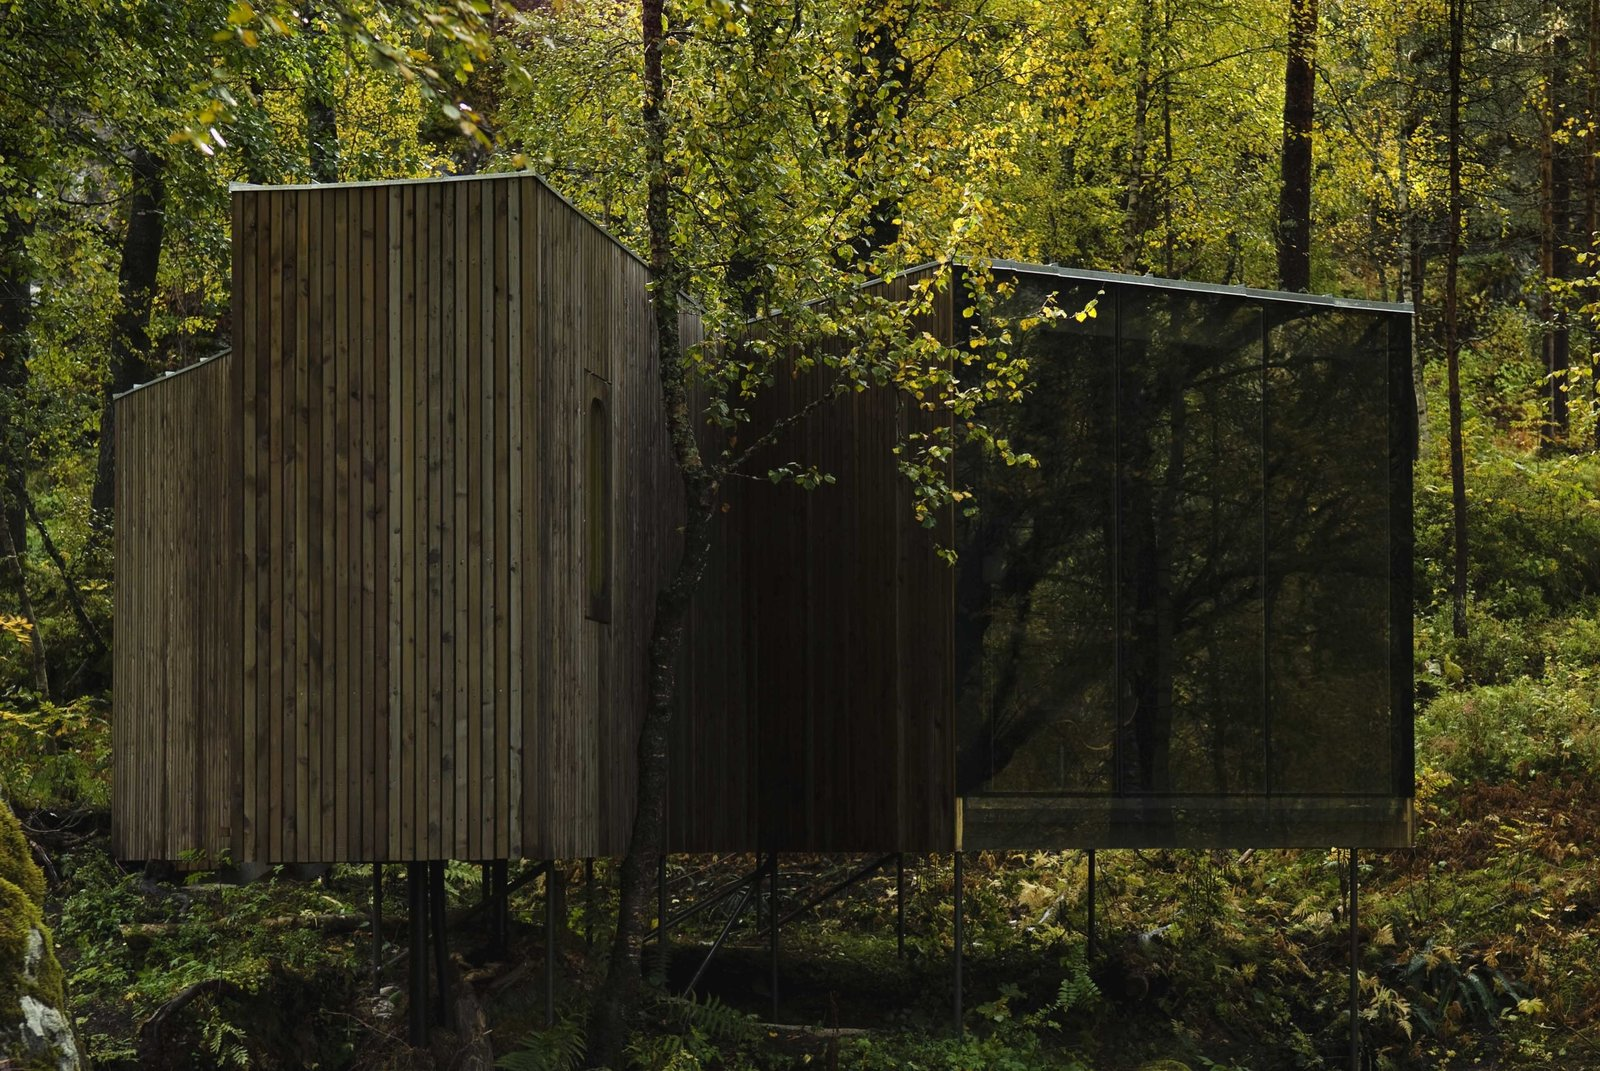 Designed by Jensen & Skovdin, the Juvet's first-generation cabins are built on stilts in order to impact the environment as little as possible. Despite the modernist aesthetic, the buildings were built by local craftsmen using traditional materials and techniques. Tagged: Exterior, House, Cabin Building Type, Wood Siding Material, Glass Siding Material, and Flat RoofLine.  Photo 55 of 101 in 101 Best Modern Cabins from Rustic Cabins Comprise This Impossibly Idyllic Hotel in Norway